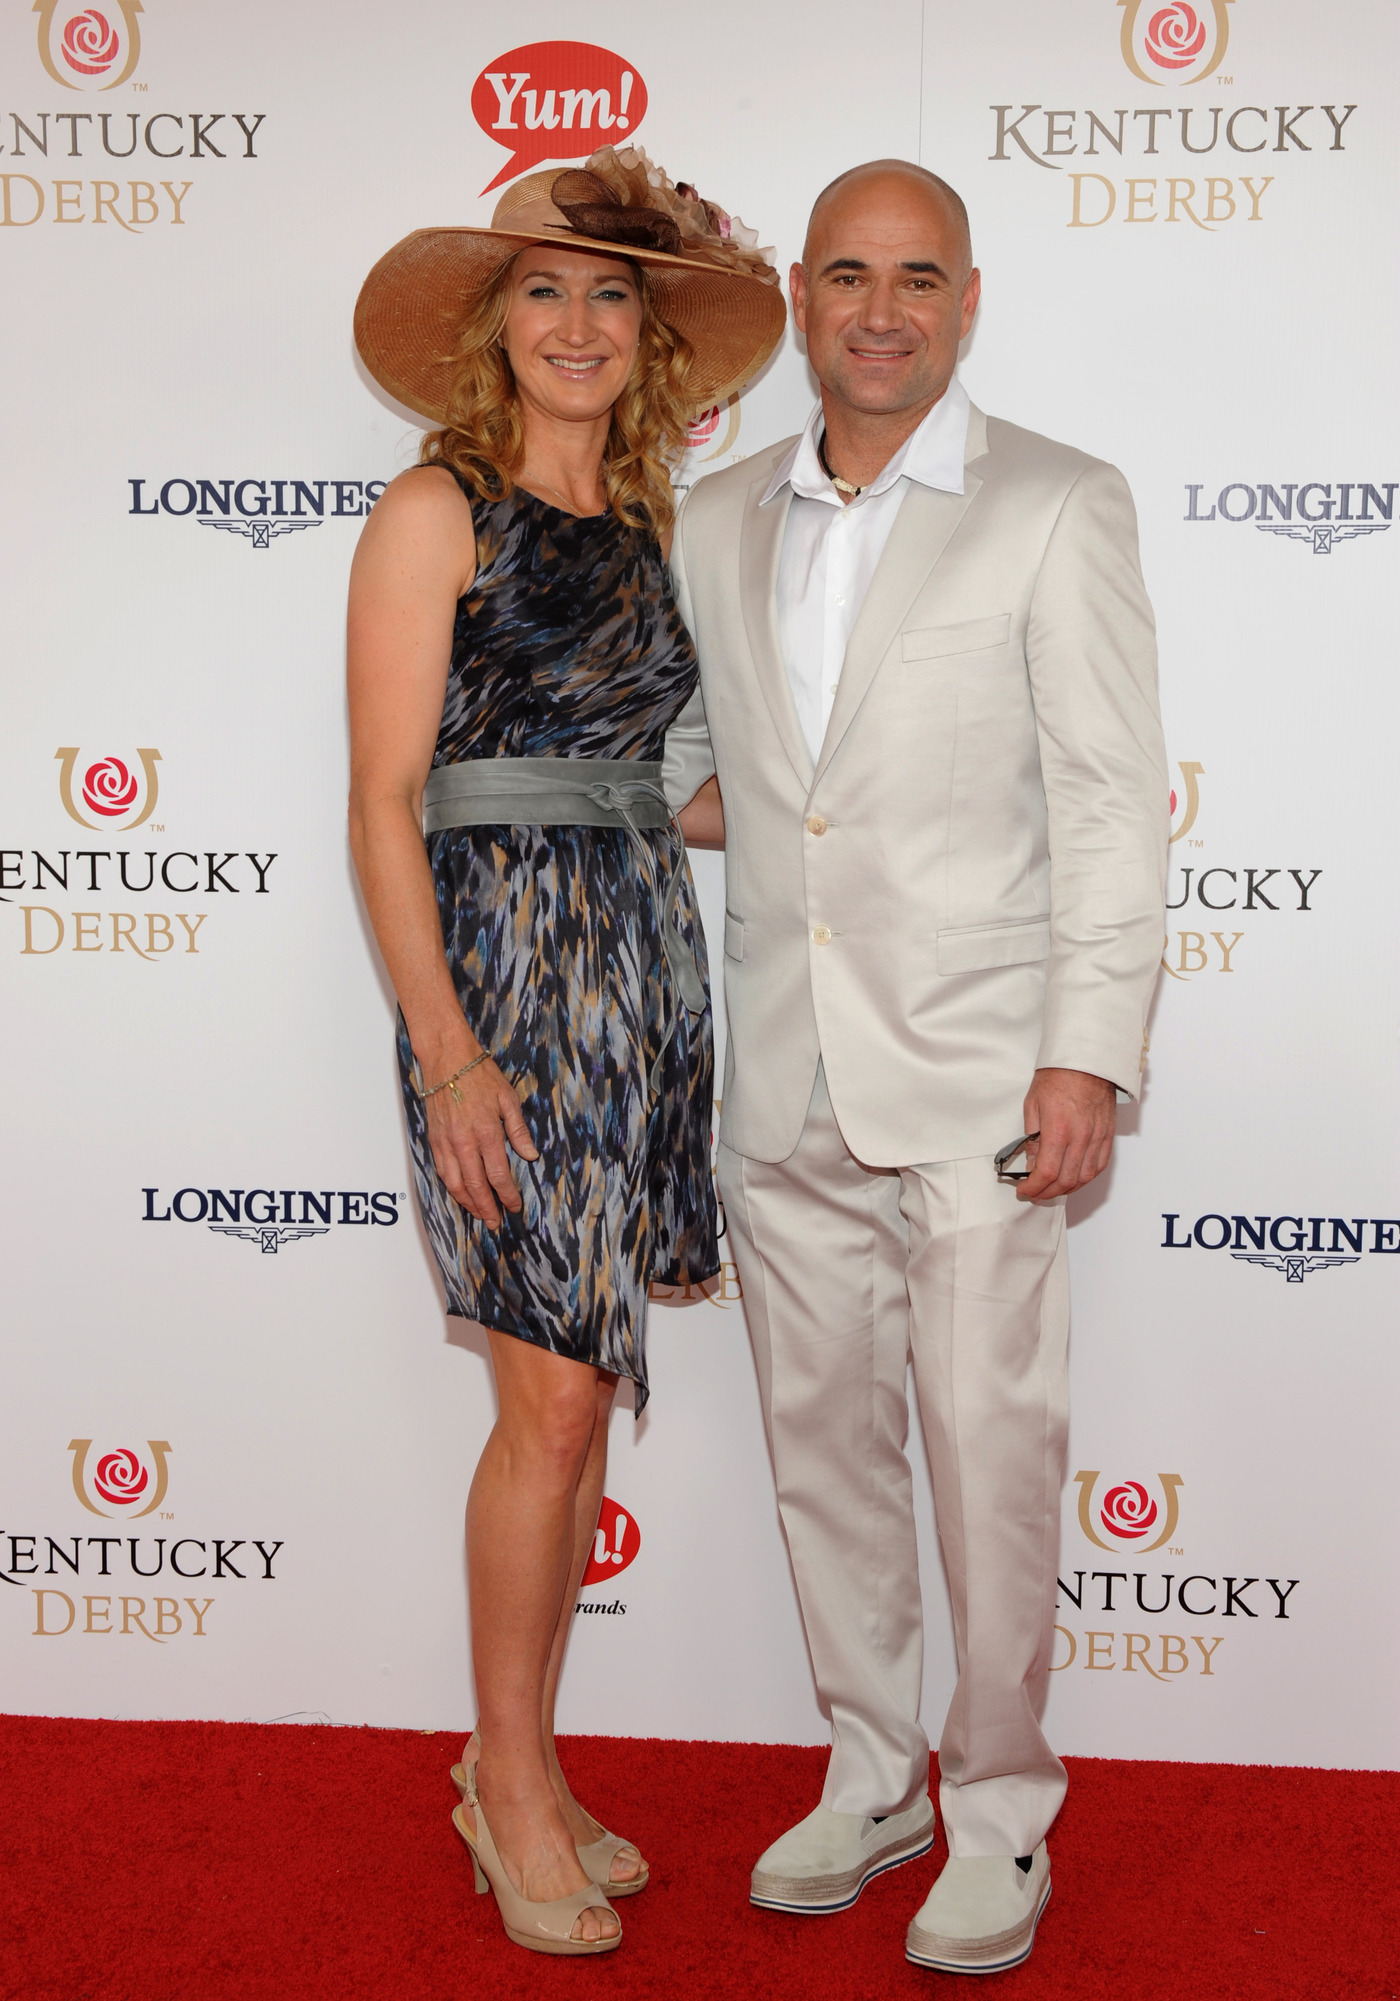 Longines Flat Racing Event: Longines celebrates its second year as Official Timekeeper and Official Watch of the Kentucky 5